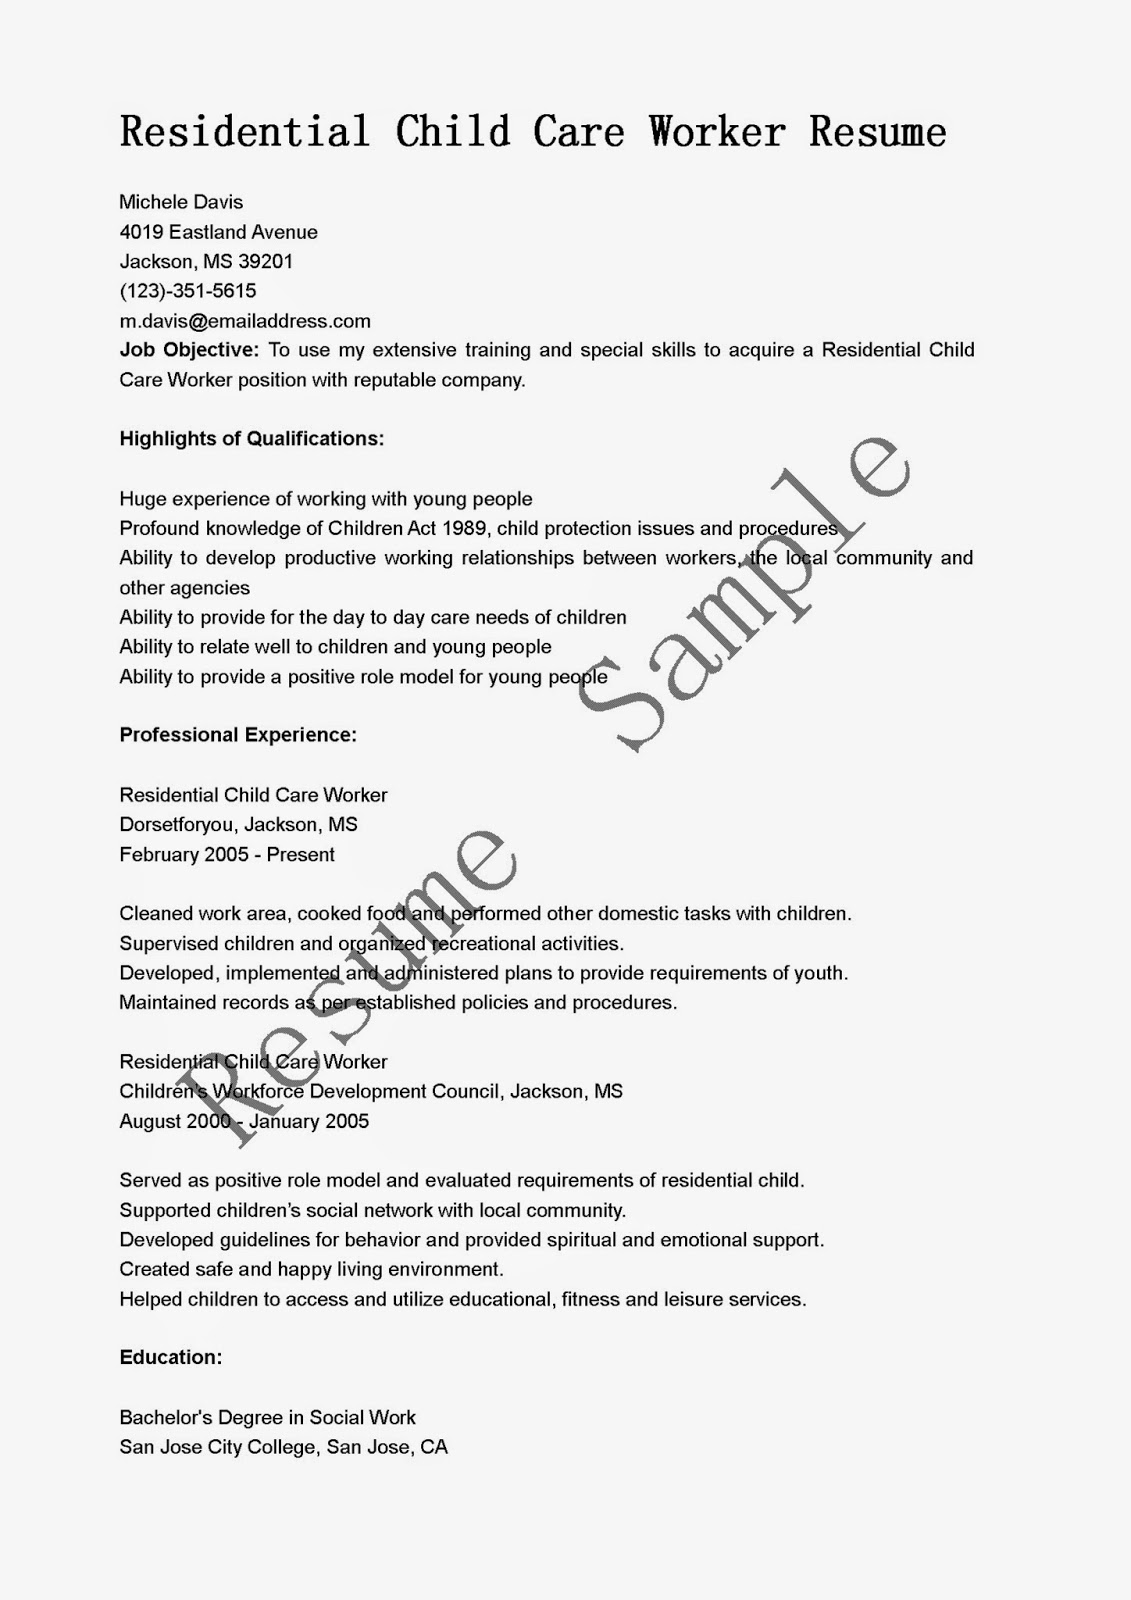 Resume samples residential child care worker resume sample for Sample resume for personal care worker